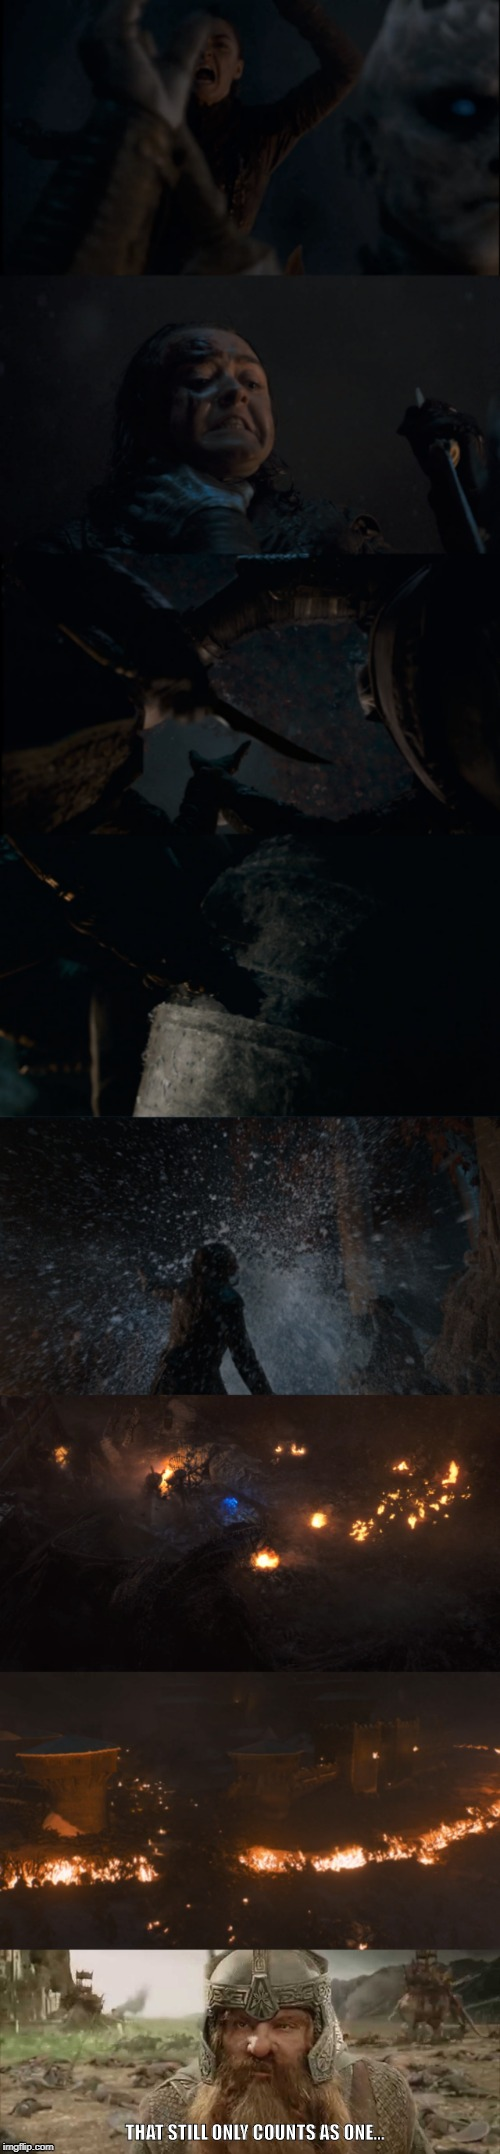 GOT It still only counts as one... | THAT STILL ONLY COUNTS AS ONE... | image tagged in game of thrones,gimli,lotr,arya stark,game of thrones arya,got | made w/ Imgflip meme maker